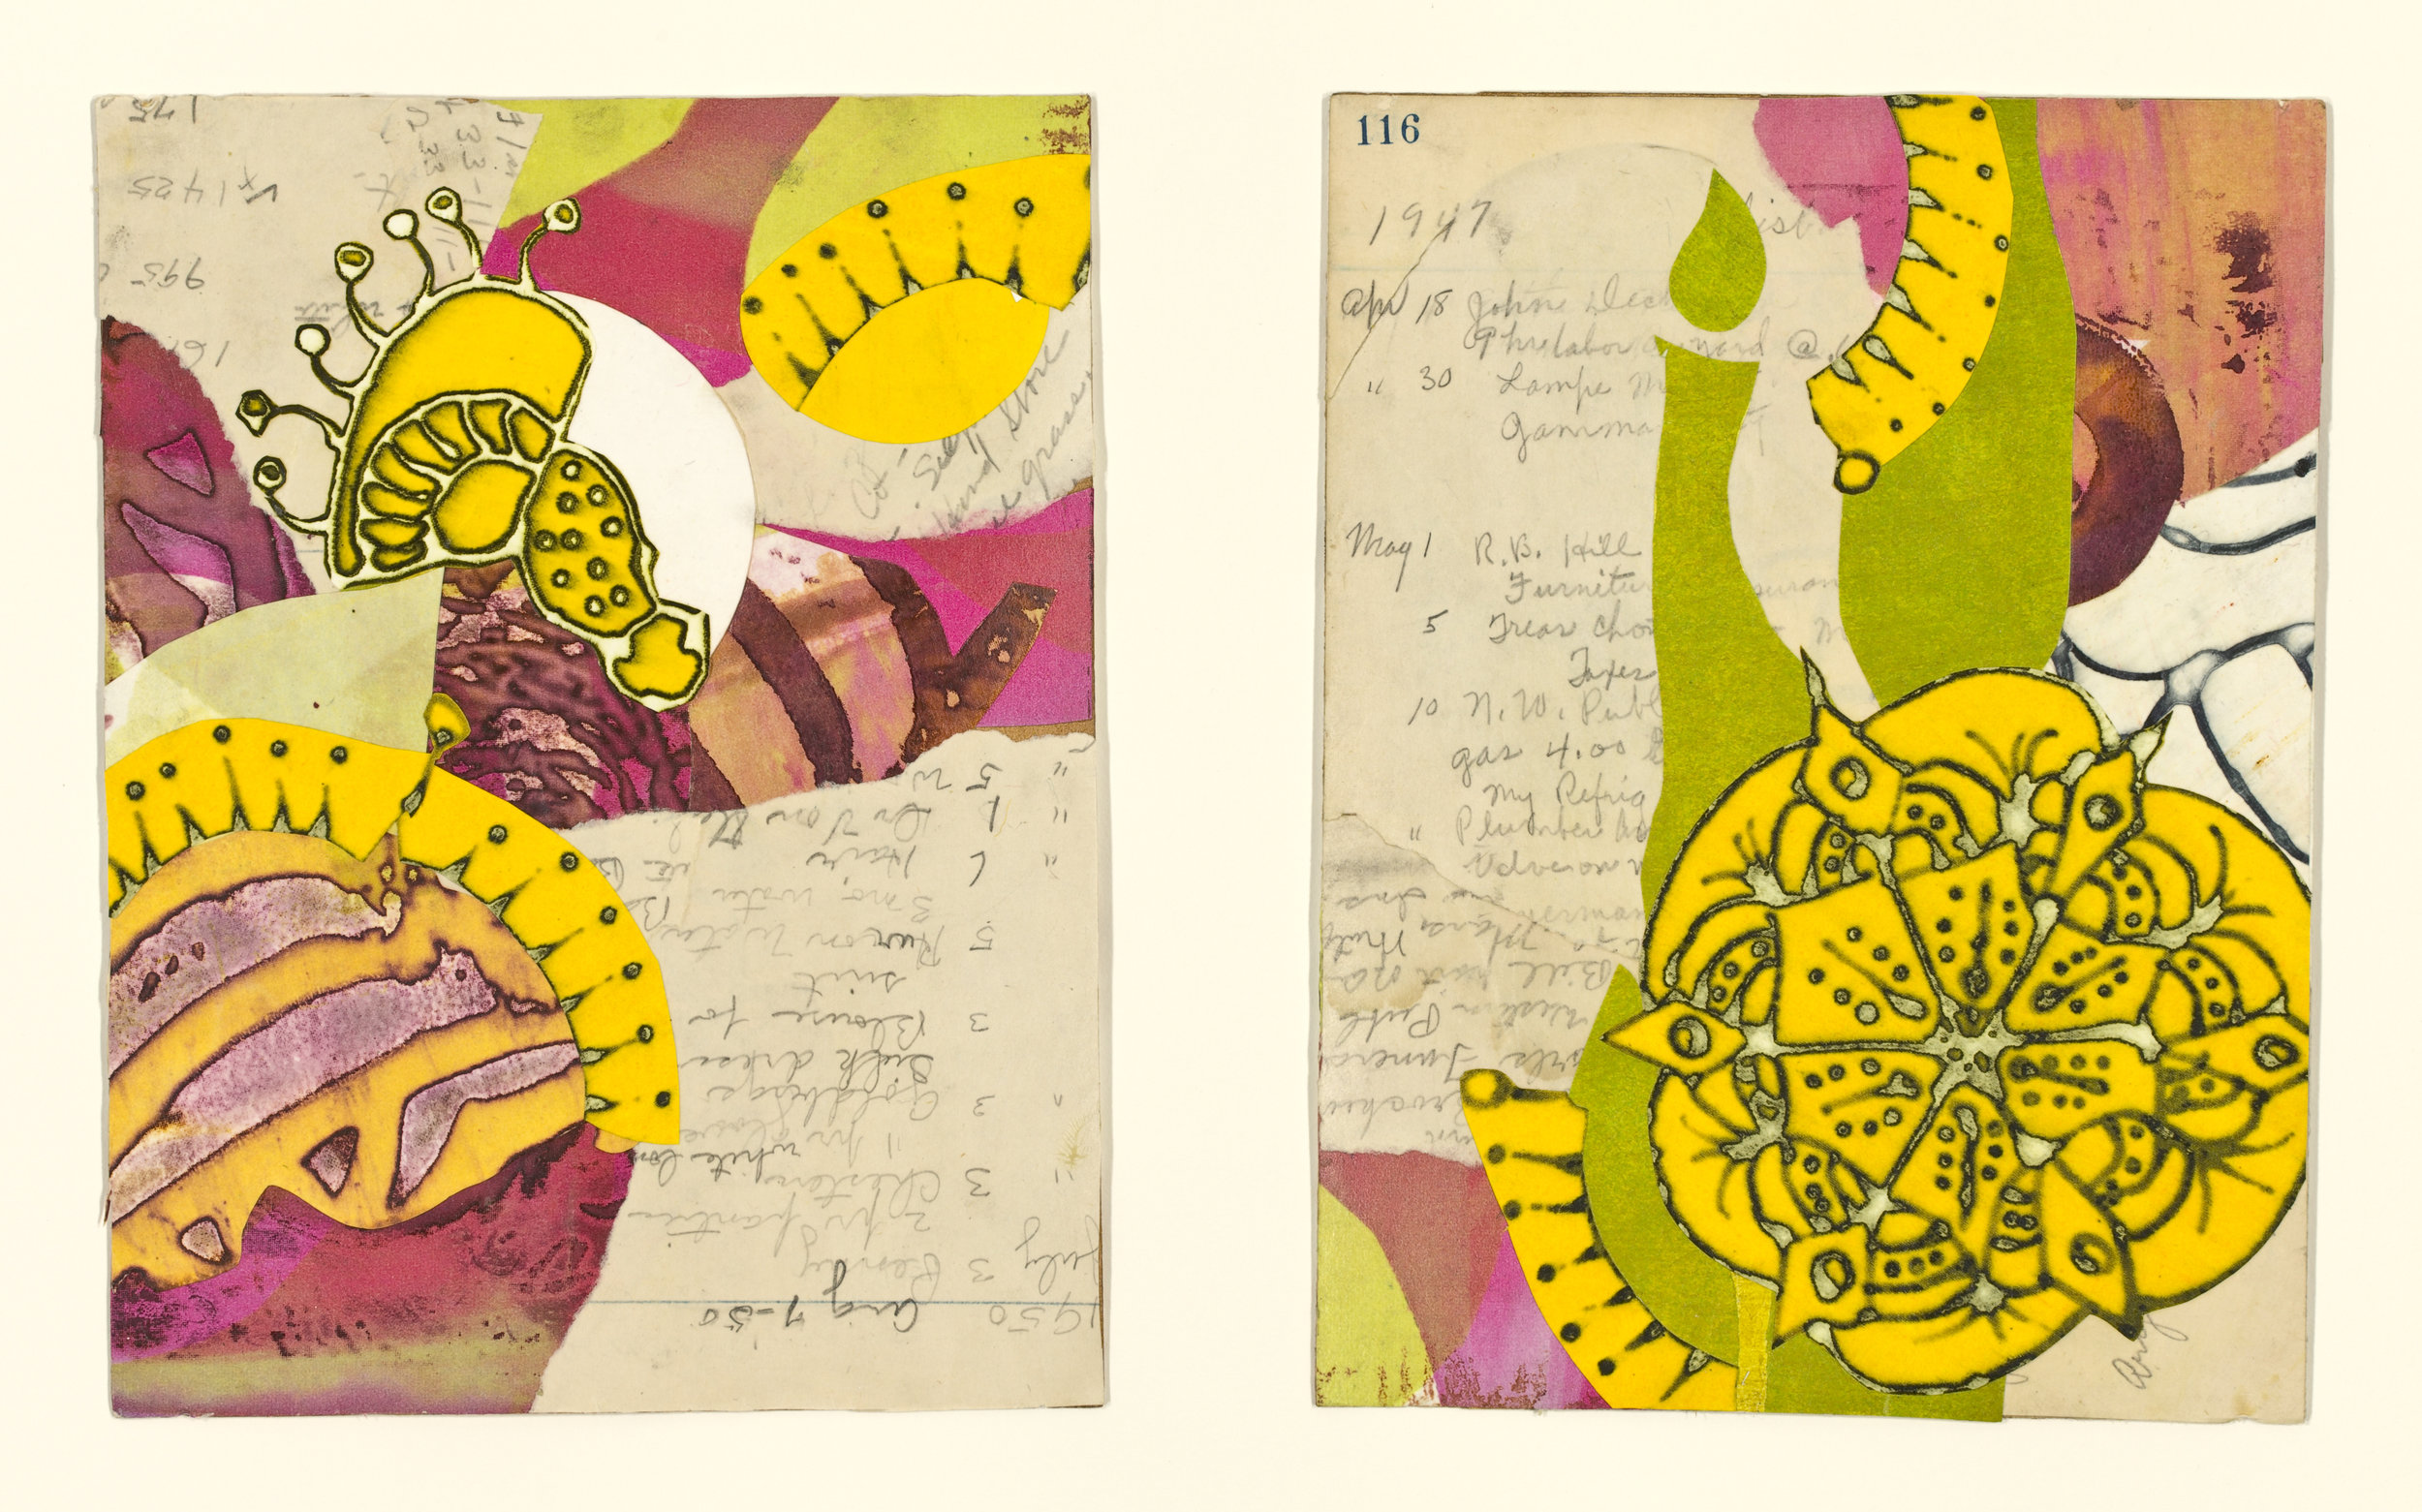 """Edna's Accounts - Pages 115-116 "", mixed media collage, 14"" x 18"", $525 (framed)"